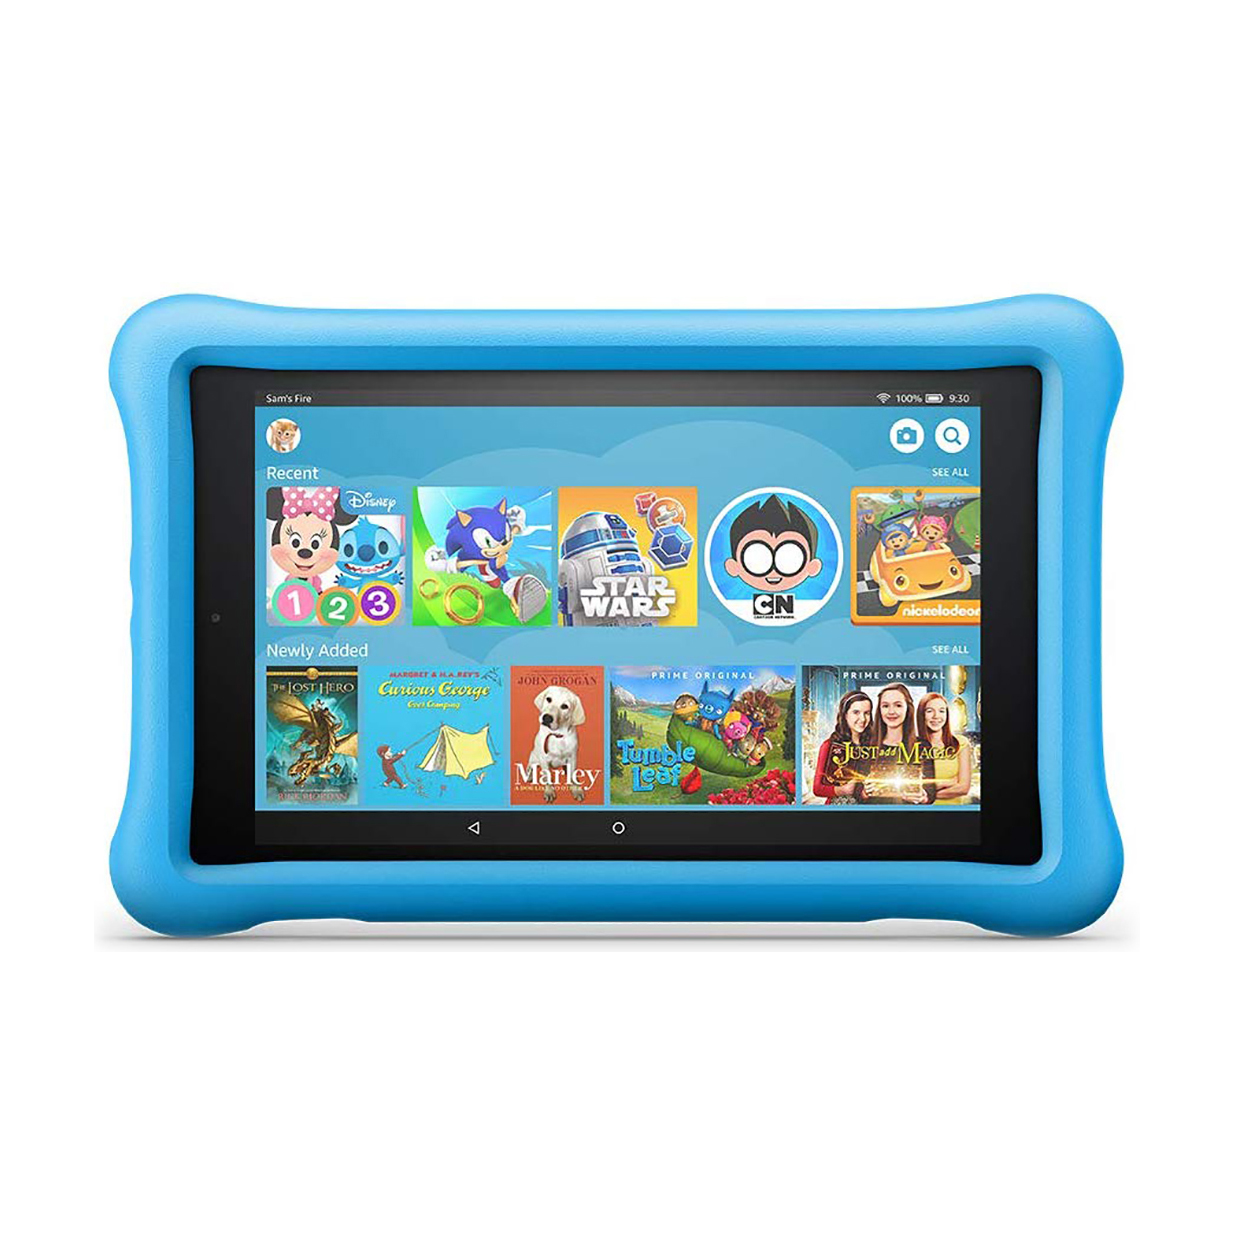 Cool gifts for kids - Fire HD 8 Kids Edition Tablet